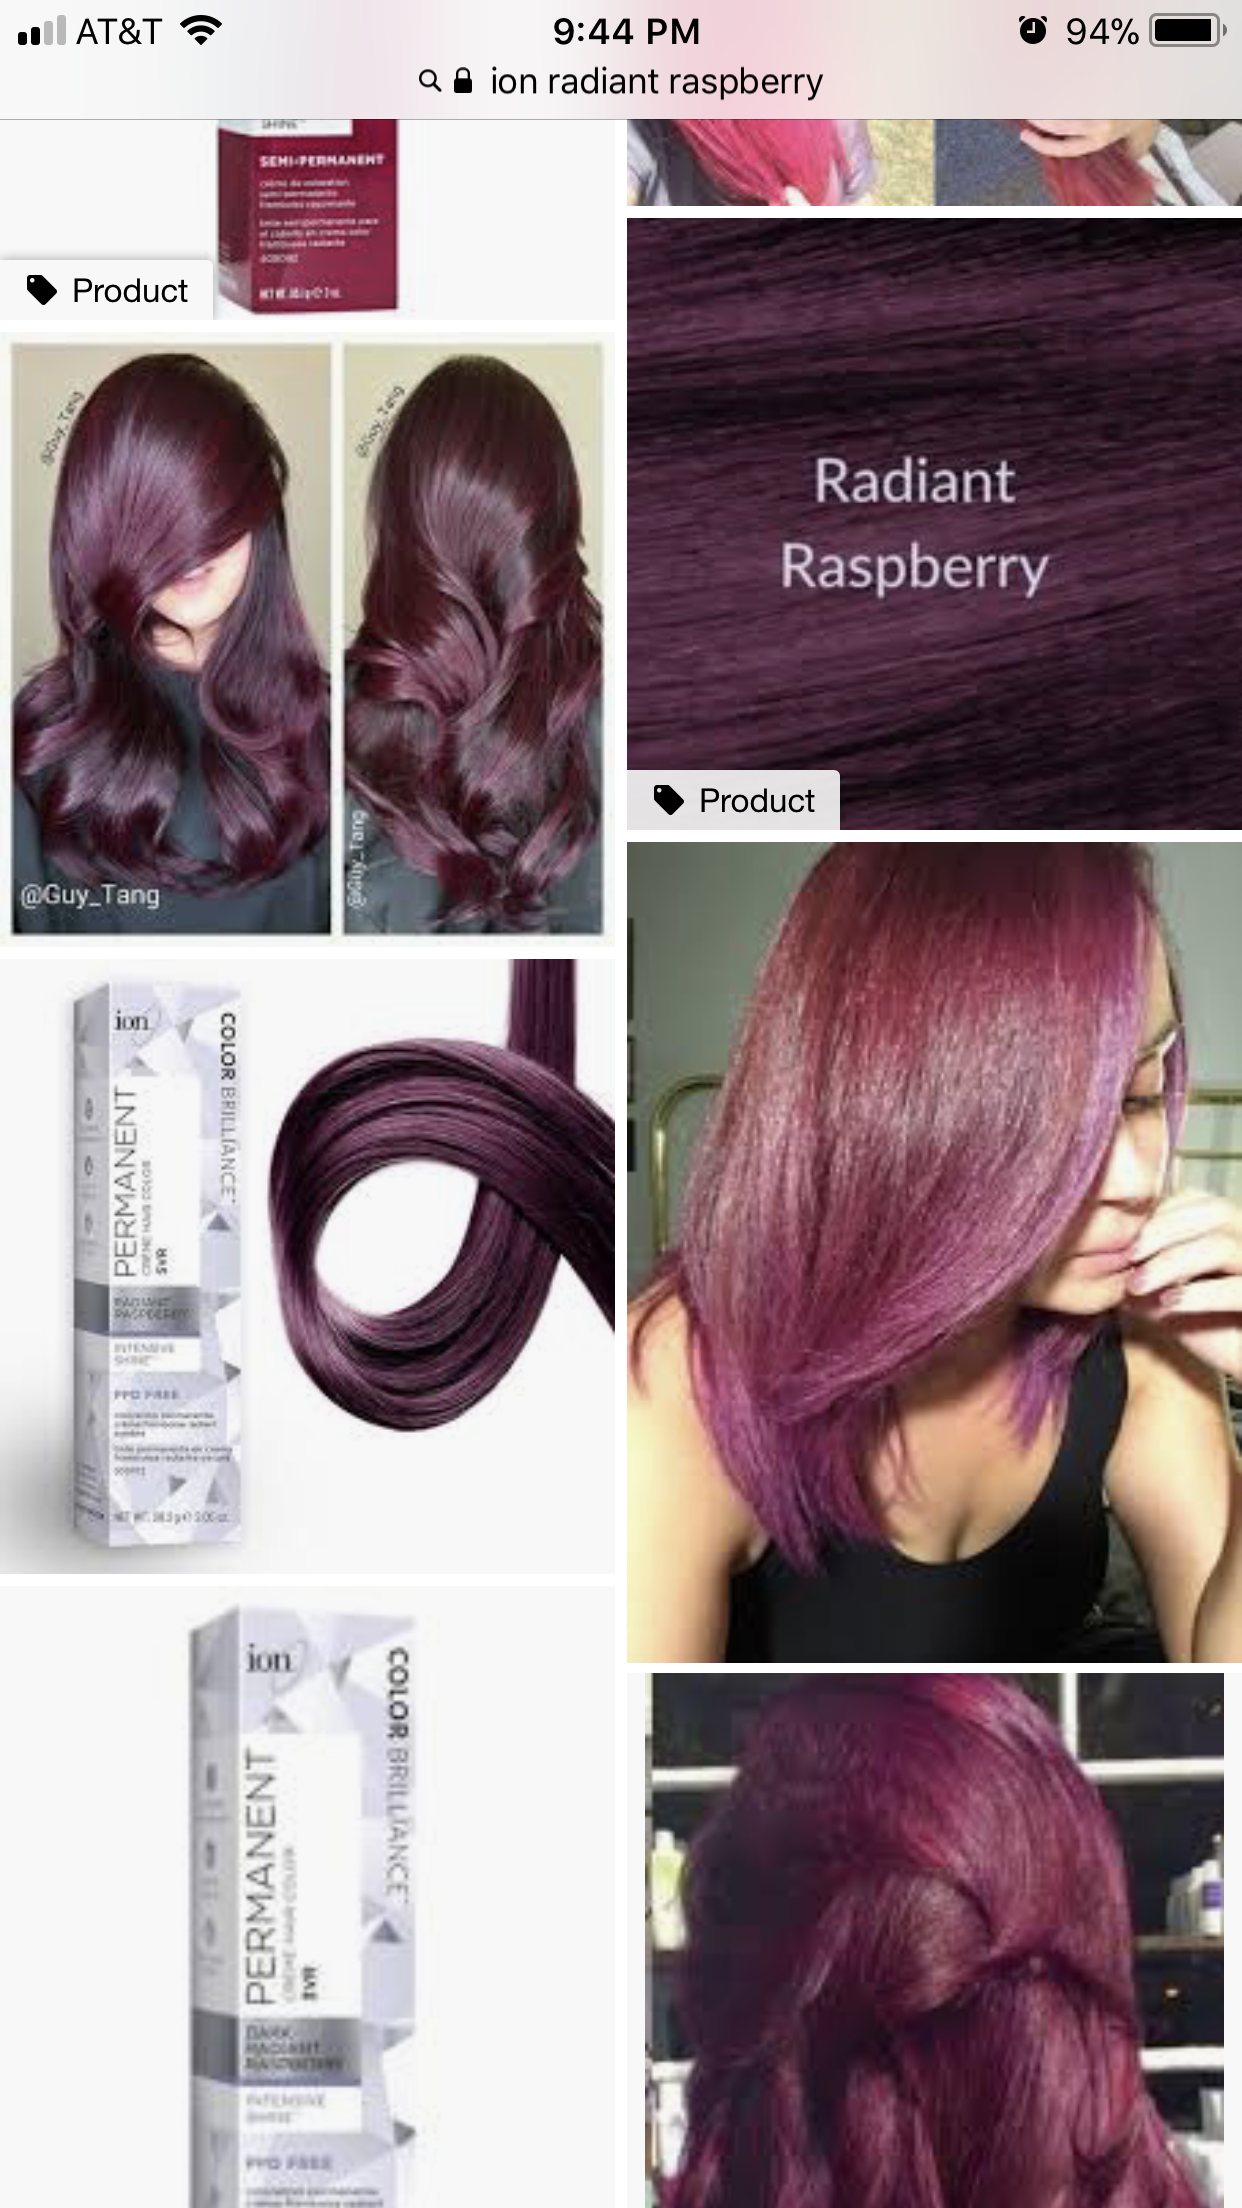 Ion Radiant Raspberry Ion Hair Colors Hair Color Chart Chrome Hair Color